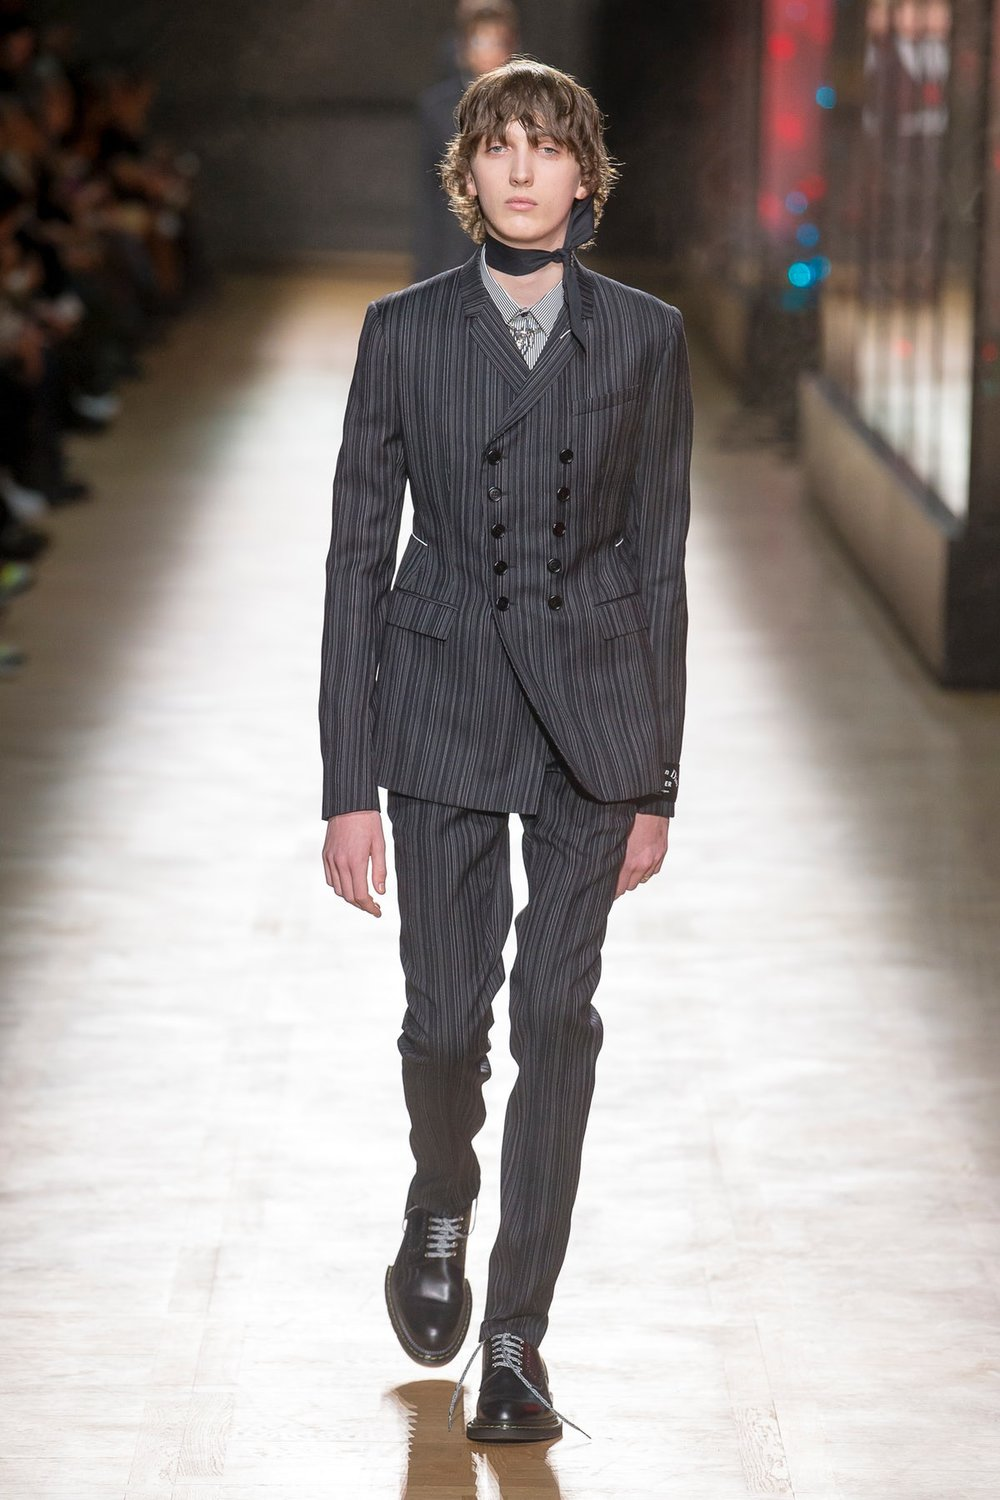 dior_homme_look_47_menswear_autumn_2018.jpeg